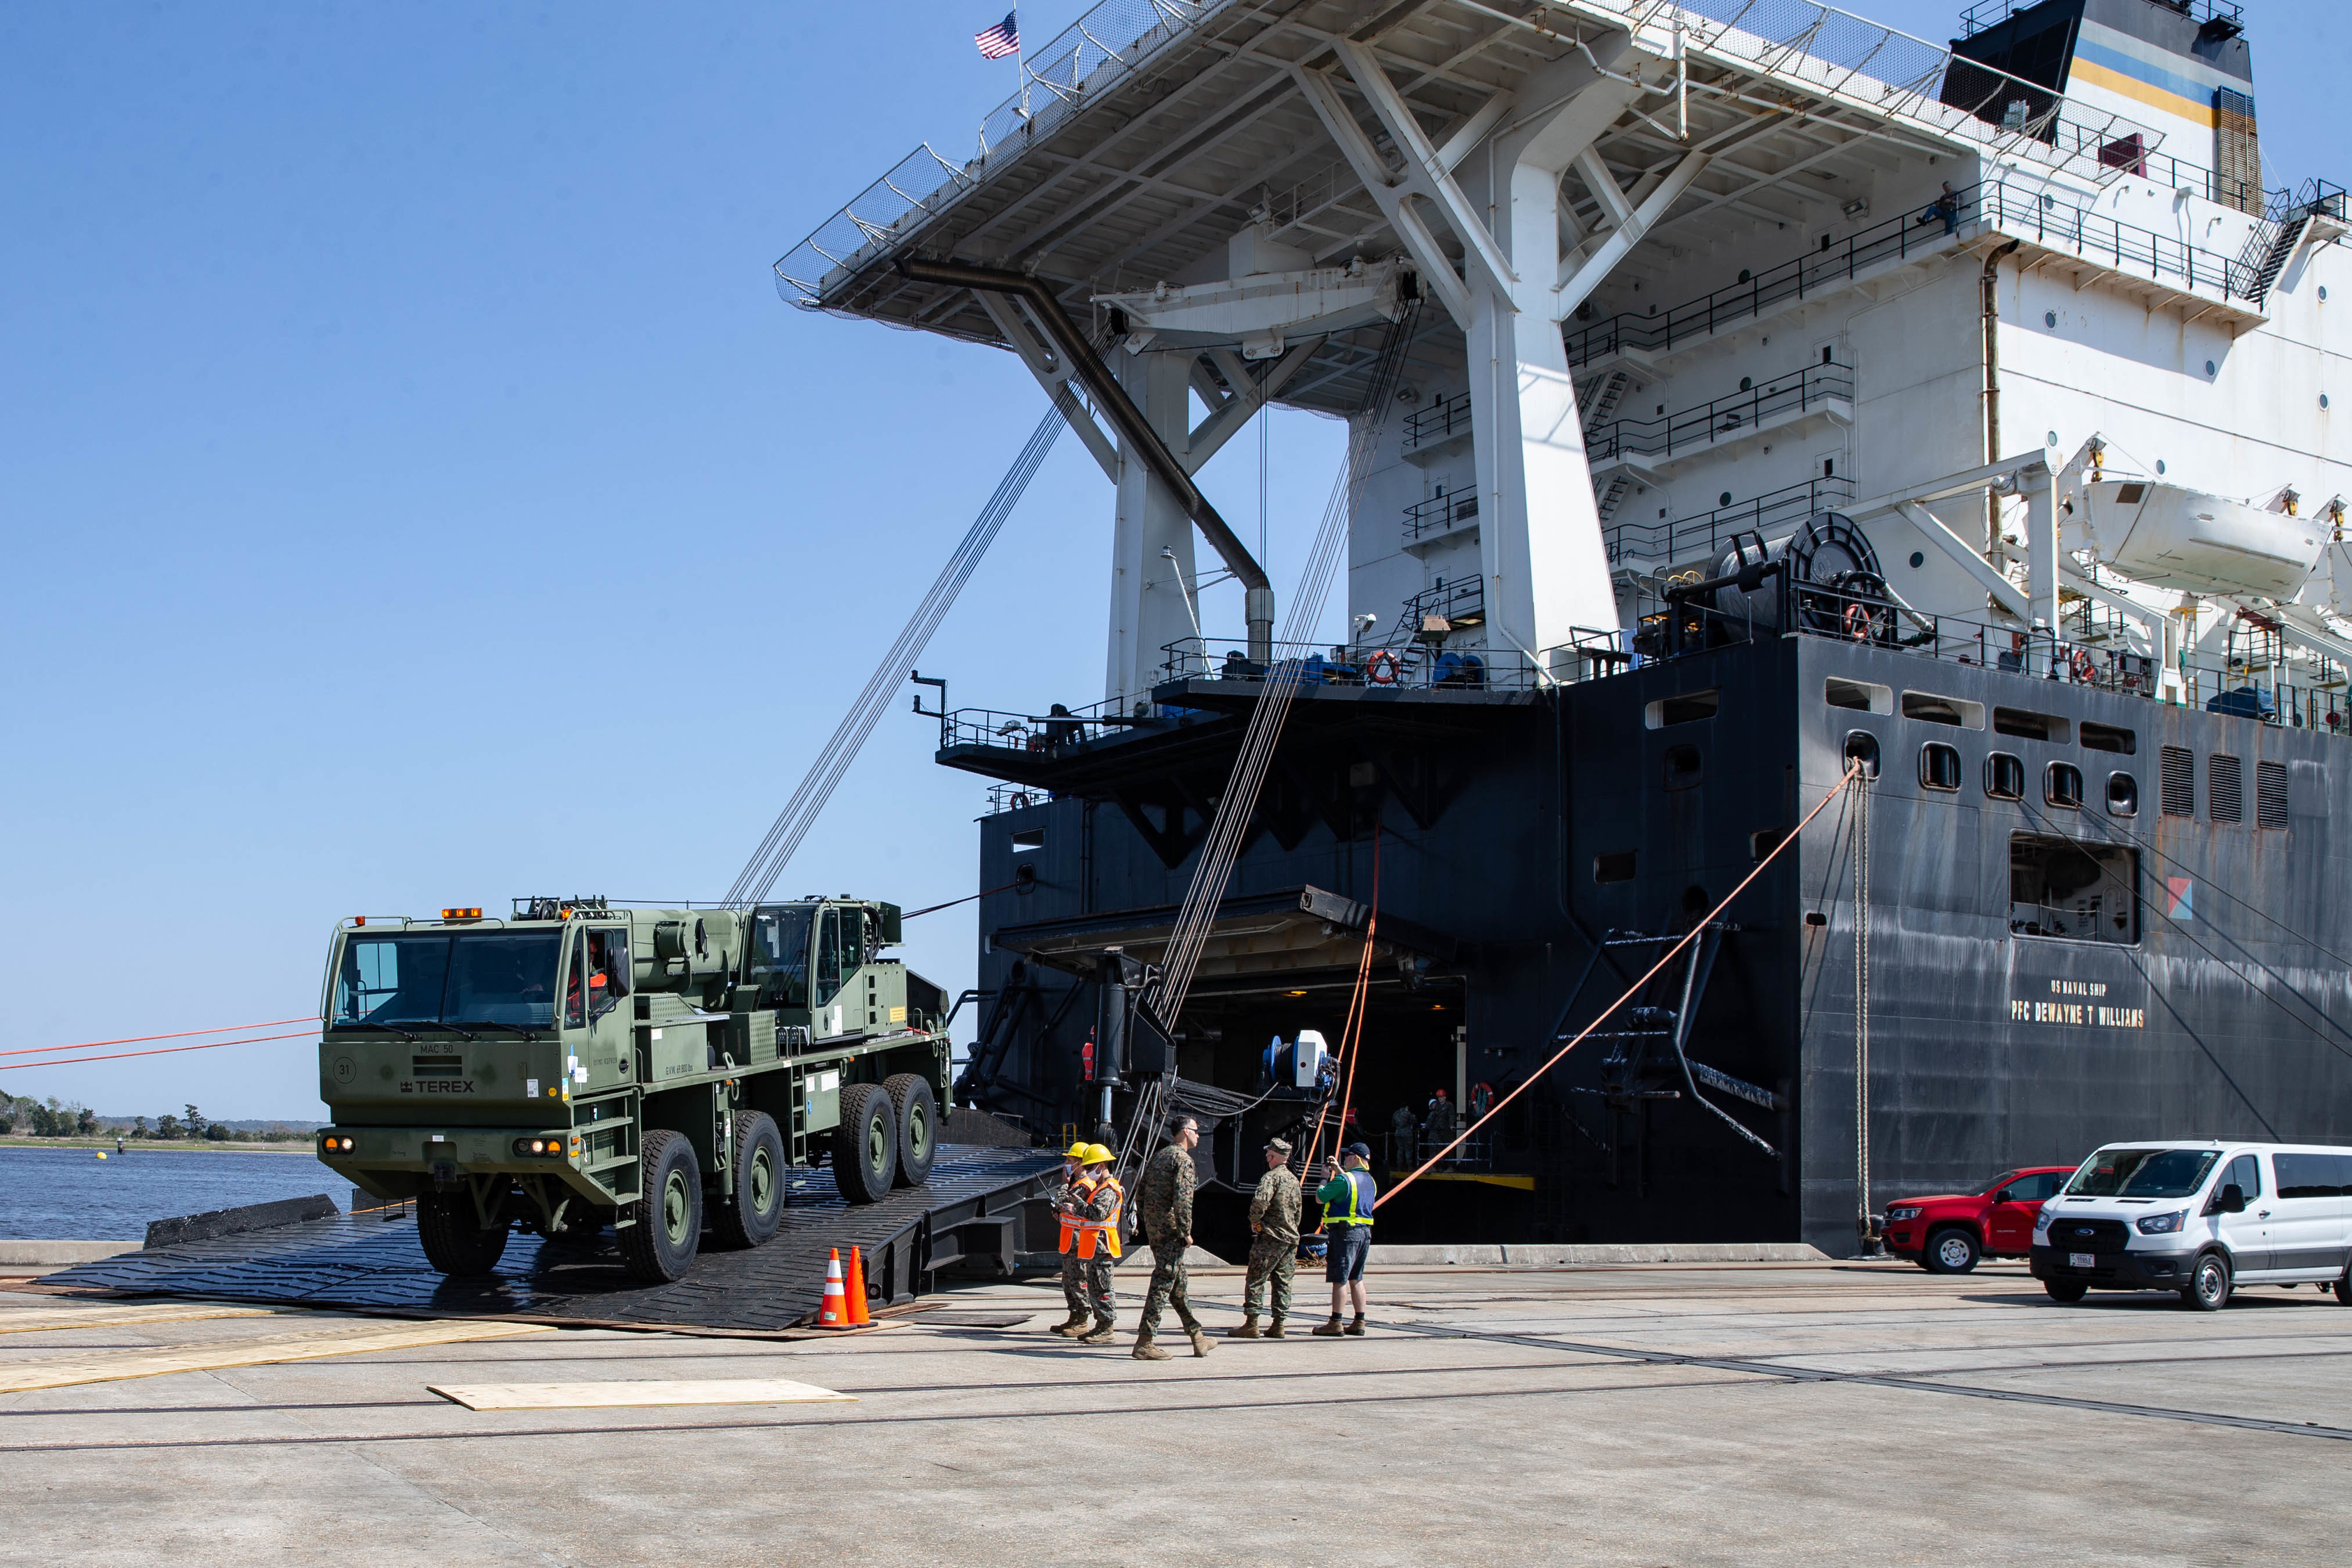 U.S. Marines offload a logistic vehicle system replacement (LVSR) from the well deck of the 2nd Lt John P. Bobo-class dry cargo ship USNS PFC Dewayne T. Williams (T-AK-3009)